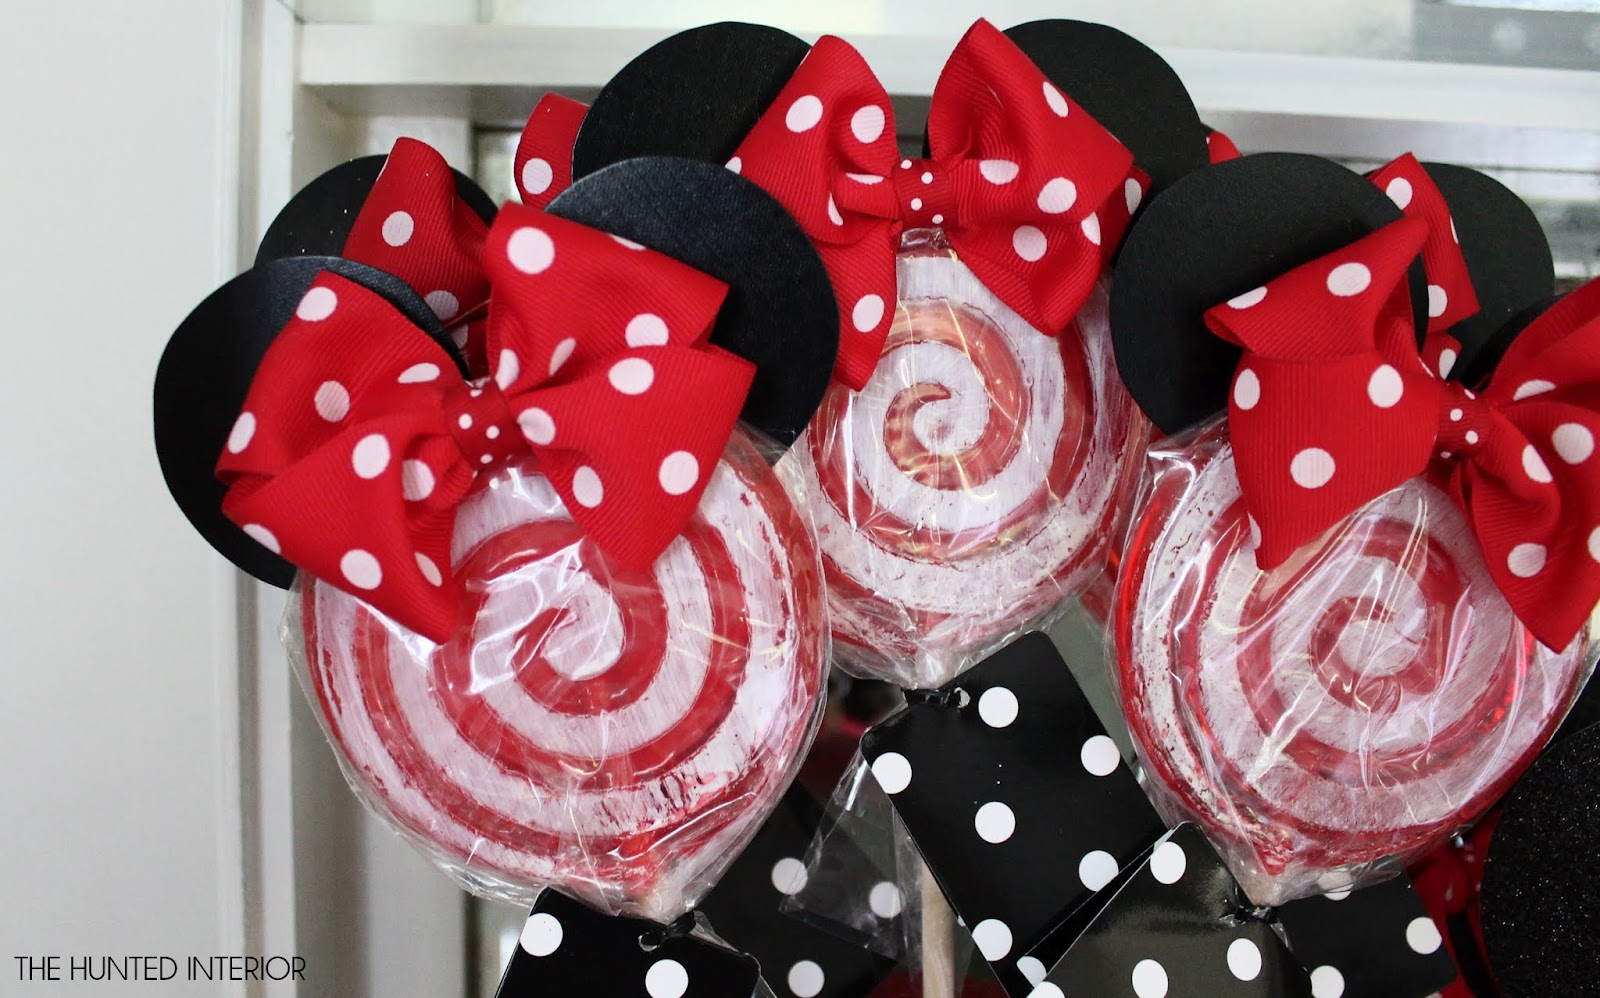 Ears Just Seemed To Minnie Fy Everything. Simple Red & White Lollipops Wallpaper